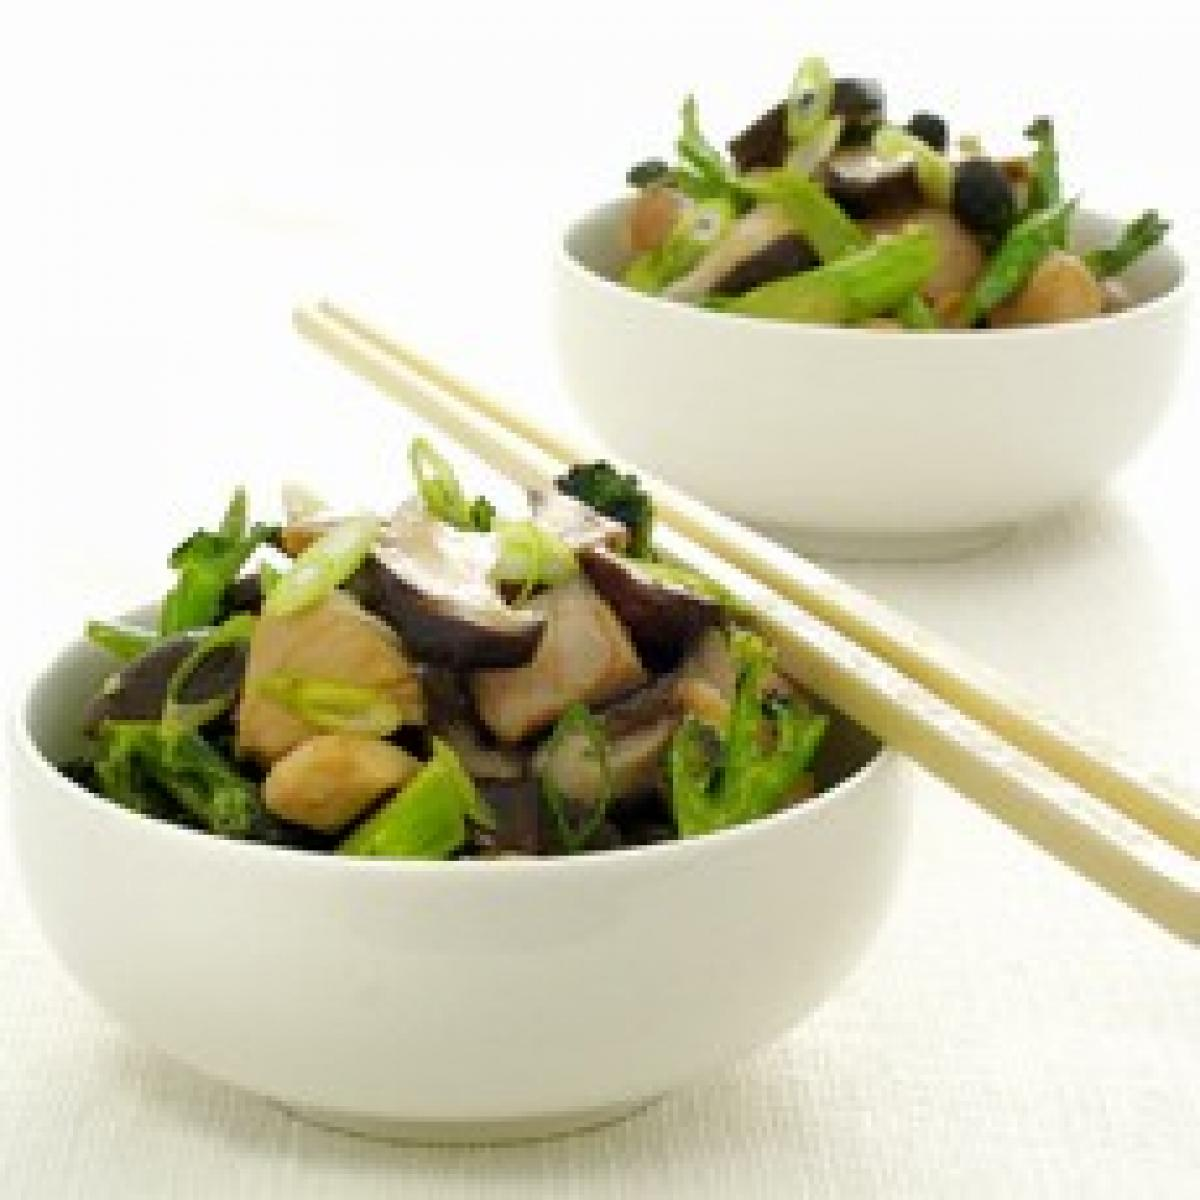 A picture of Delia's Chinese Stir-fried Chicken with Broccoli and Mushrooms recipe